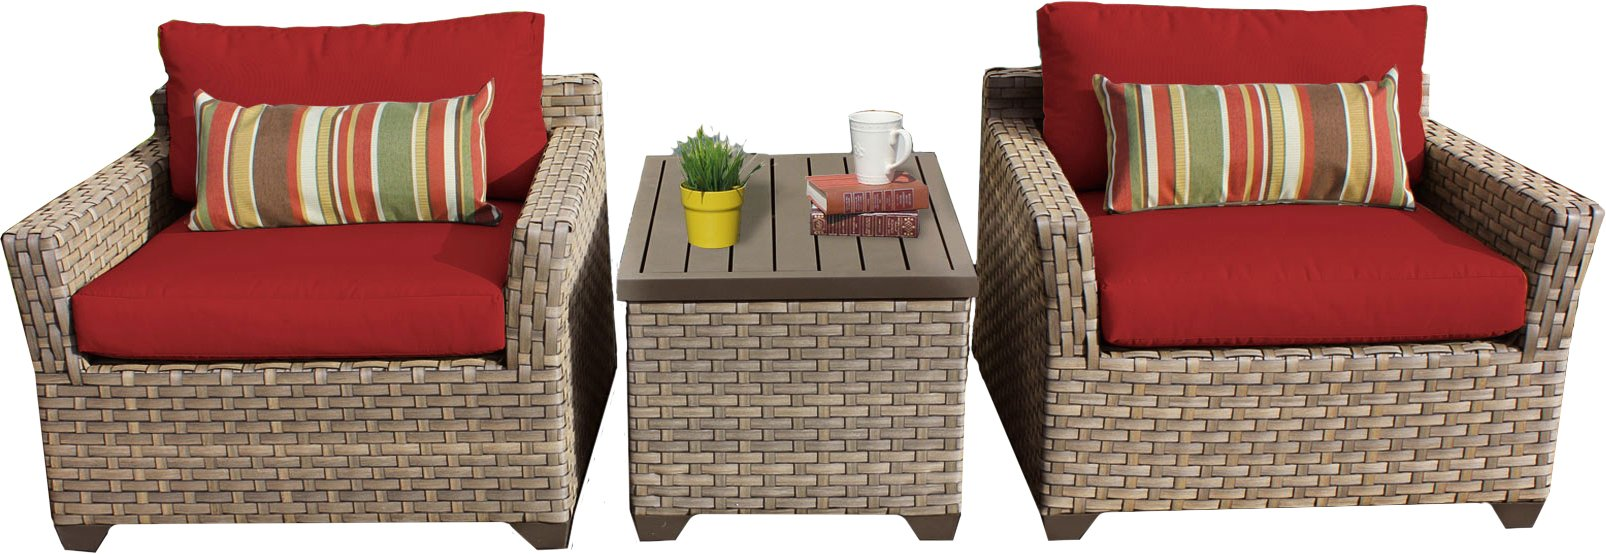 TK Classics 3 Piece Monterey Outdoor Wicker Patio Furniture Set, Terracotta - Fabric Warranty - 1 year coverage against fading Cushions - Thick Cushions for a luxurious look and feel Cushion Covers - Washable and zippered for easy cleaning (air dry only) - patio-furniture, patio, conversation-sets - 71Lm do34dL -